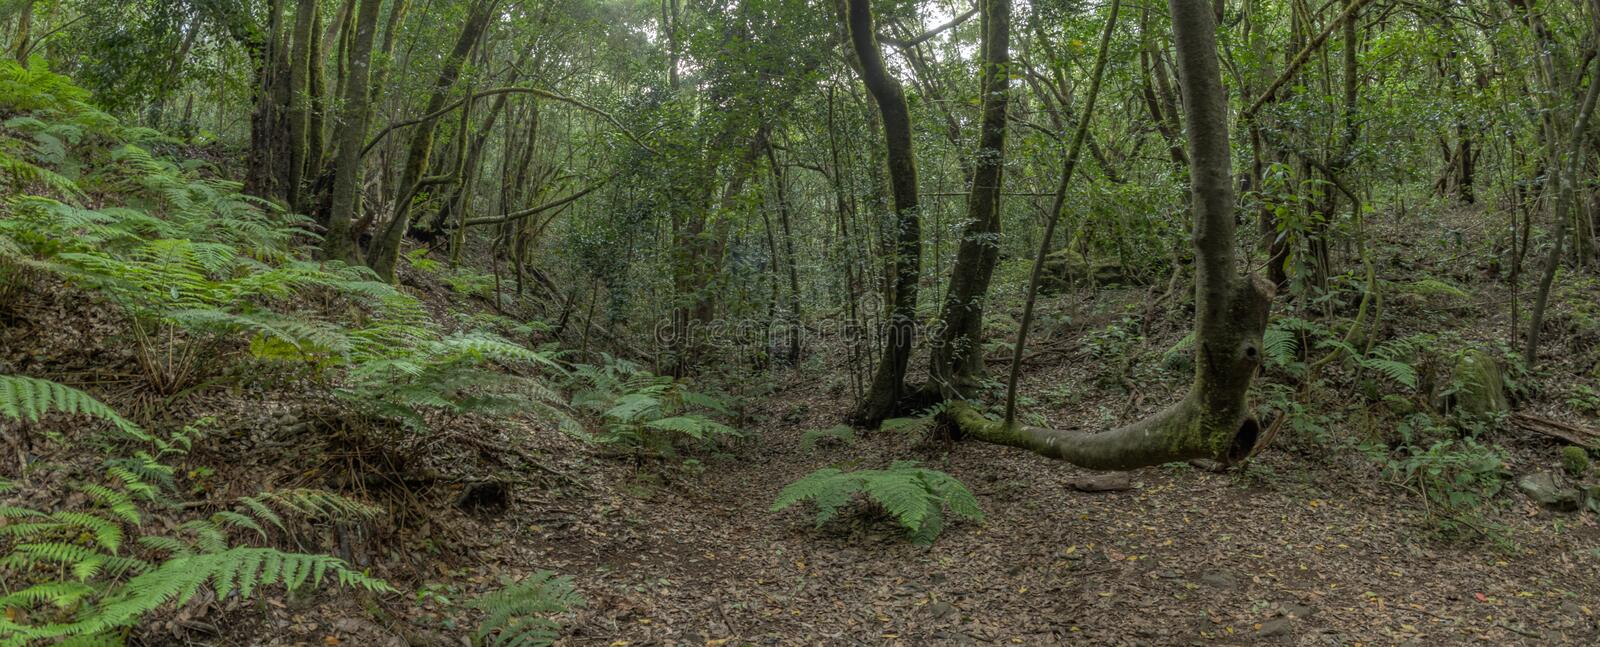 Super wide angle panorama. Relict forest on the slopes of the Garajonay National Park mountains. Giant Laurels and Tree Heather. Along narrow winding paths royalty free stock photos